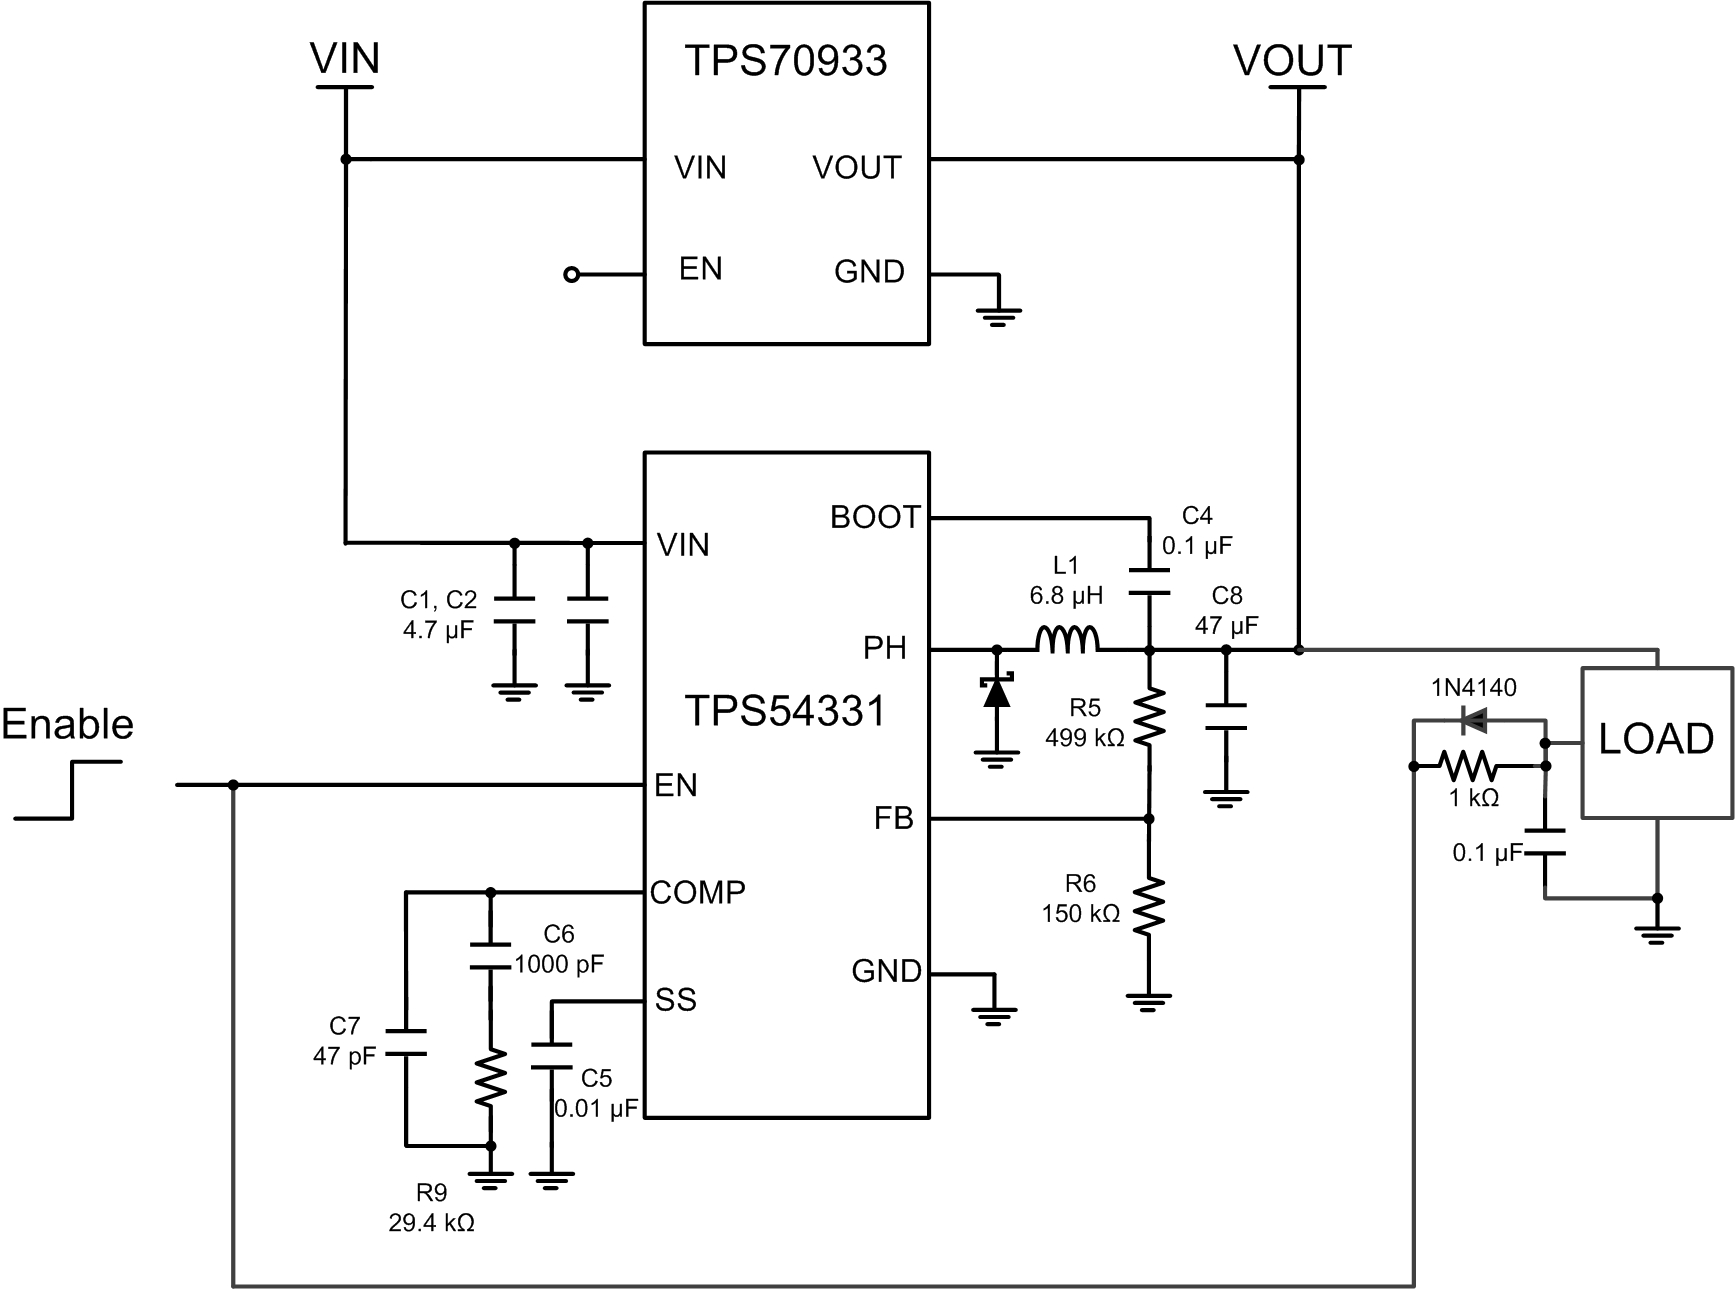 How To Improve Buck Converter Light Load Efficiency With An Ldo Circuit 2313ldo 5f00 Switch Parallel W Enable And